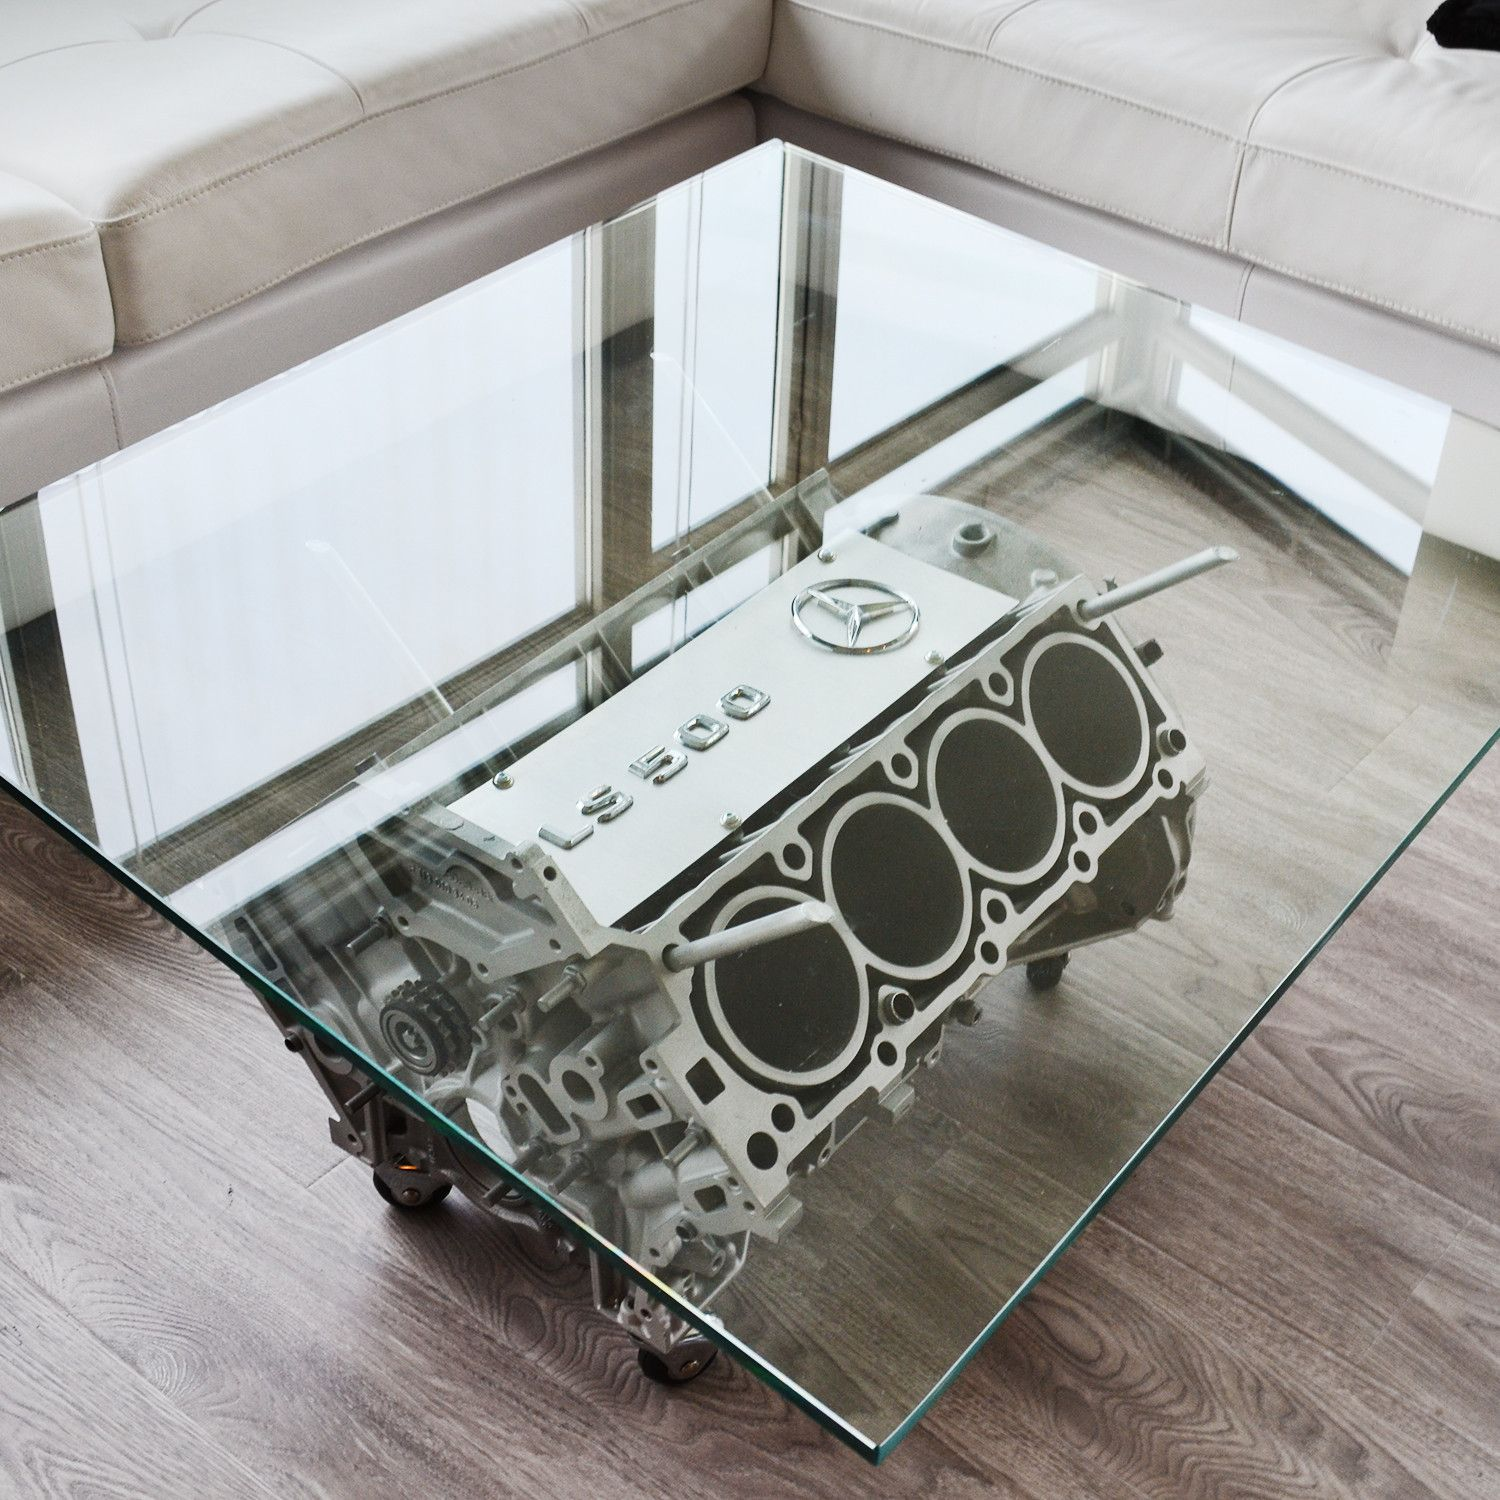 V8 Mercedes CLS 500 Coffee Table modern stuff